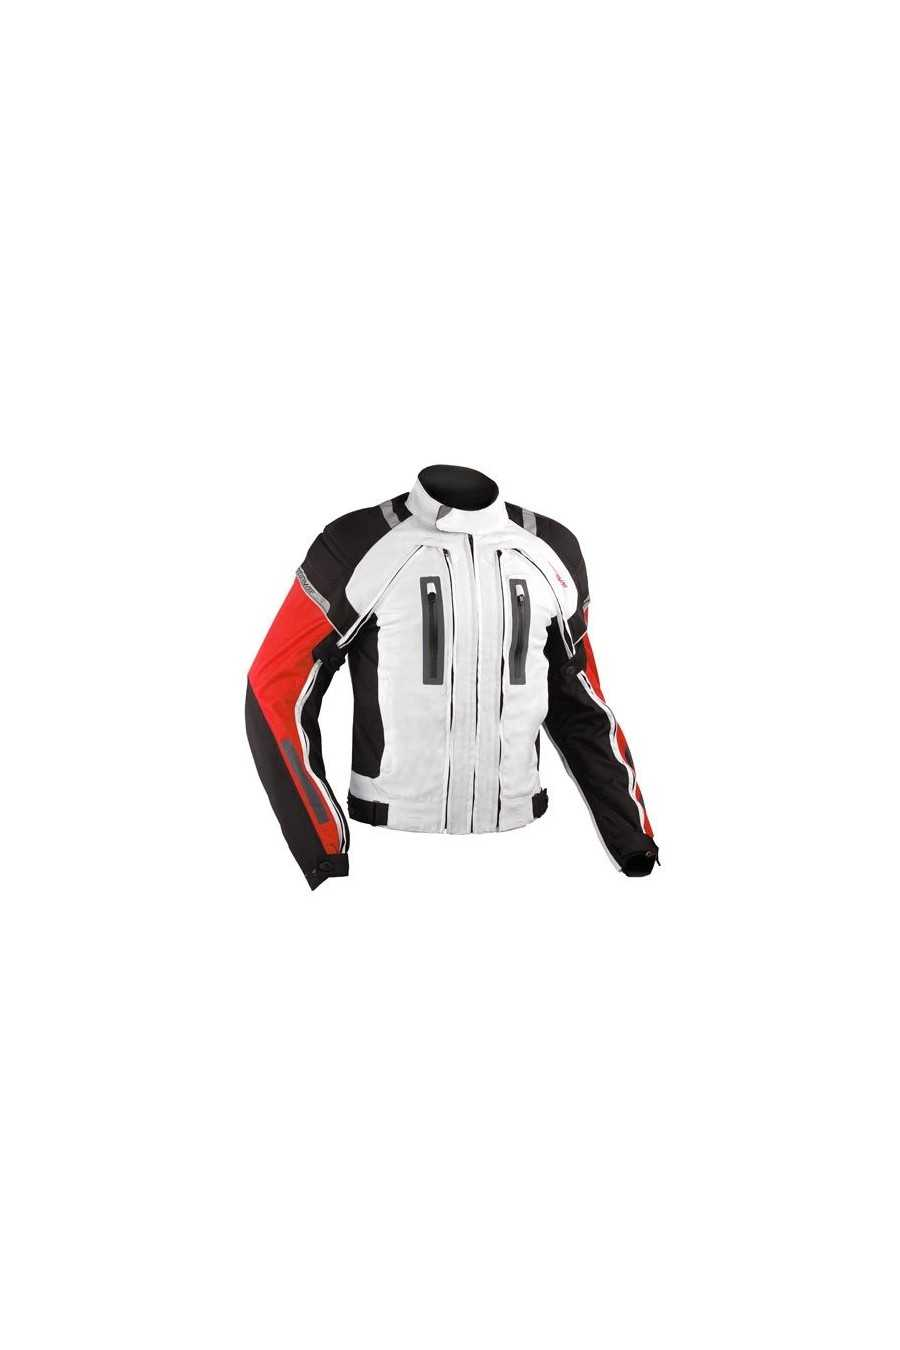 A-Pro Areotech White-Red Giacca Moto Touring